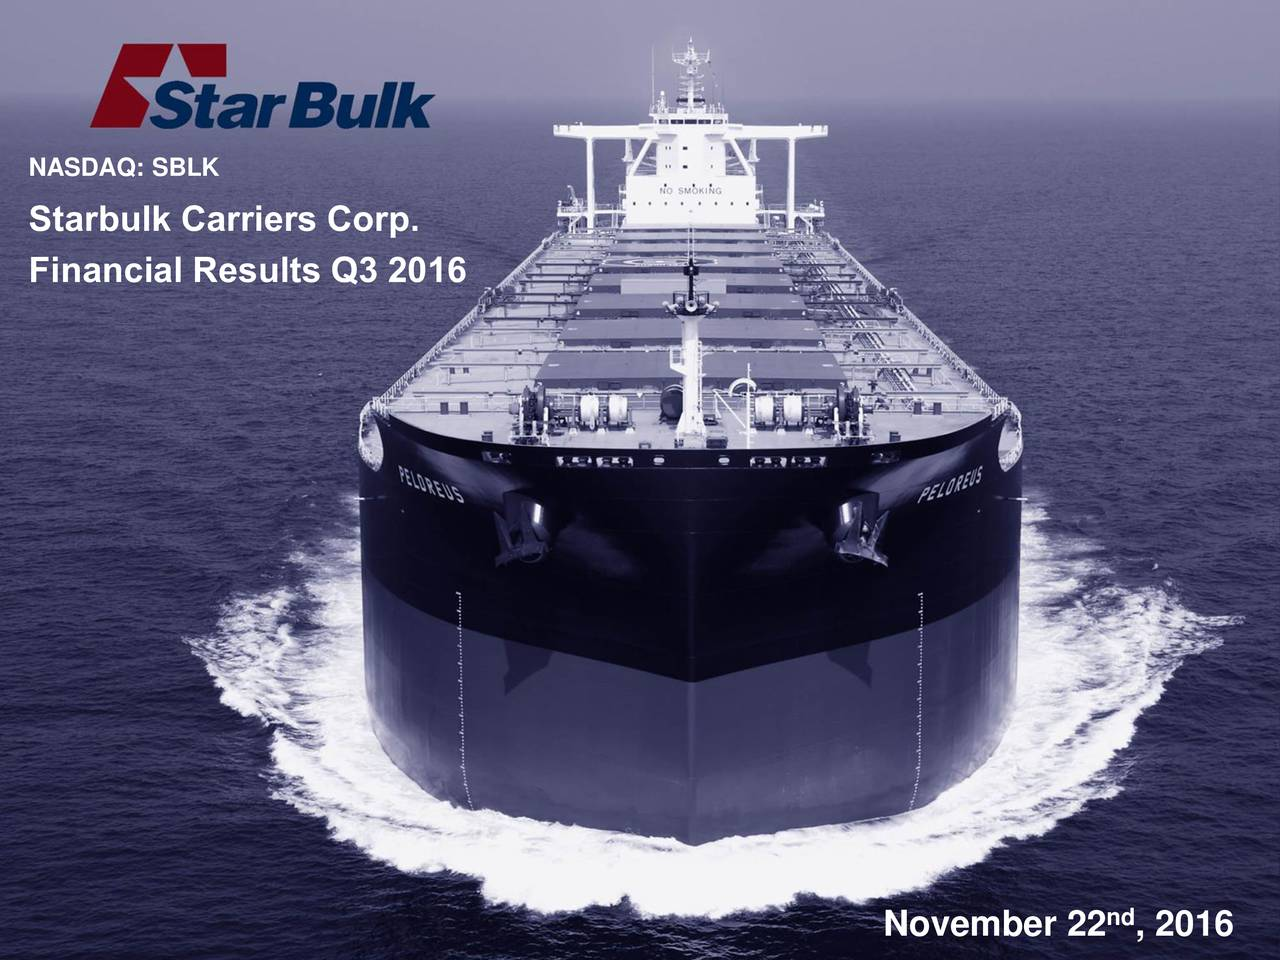 Starbulk Carriers Corp. Financial Results Q3 2016 November 22 , 2016